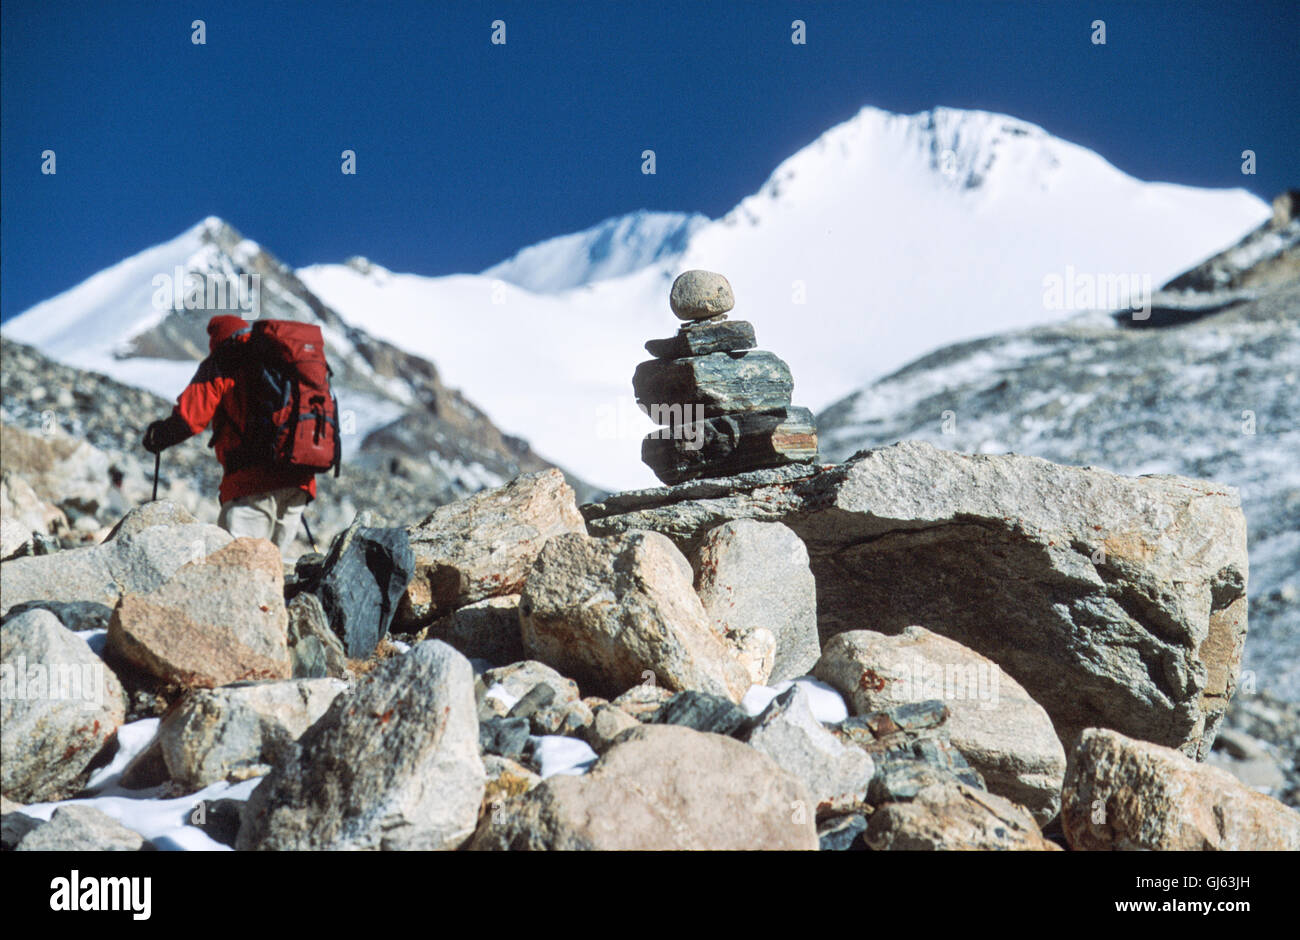 British trekker, part of our group of fifteen between Everest Base Camp (5,200 metres) and camp I (5,460 metres) - Stock Image